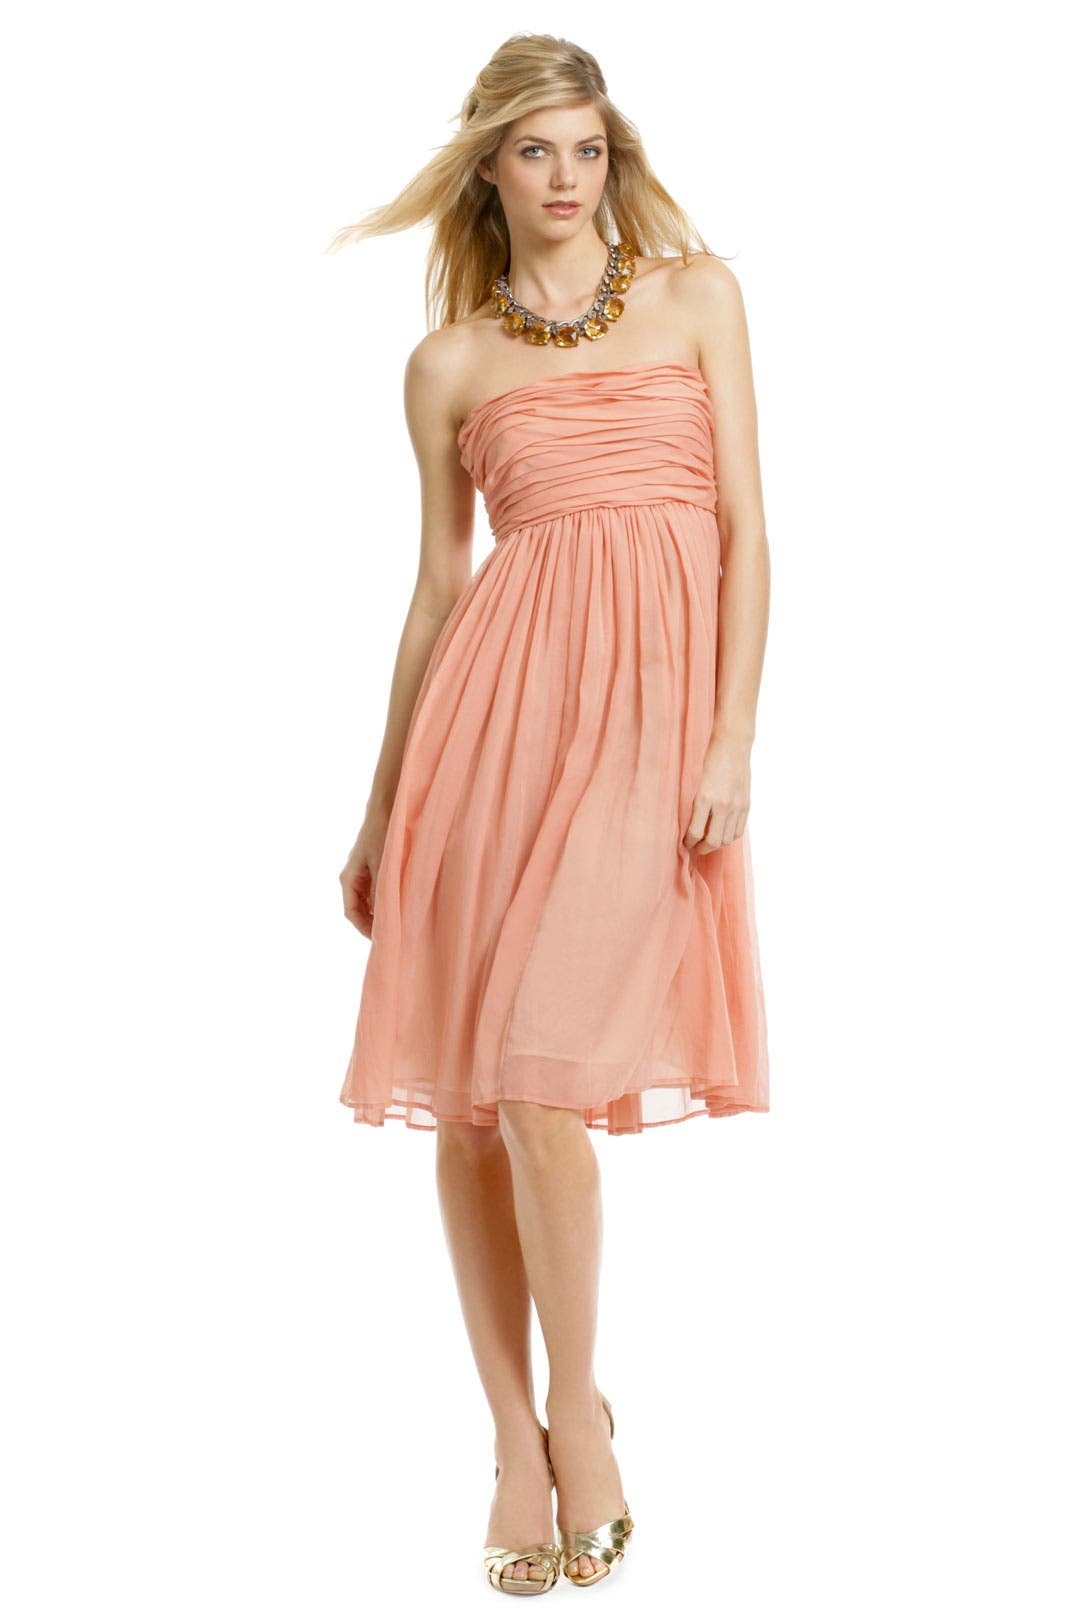 Making Me Blush Dress by See by Chloe